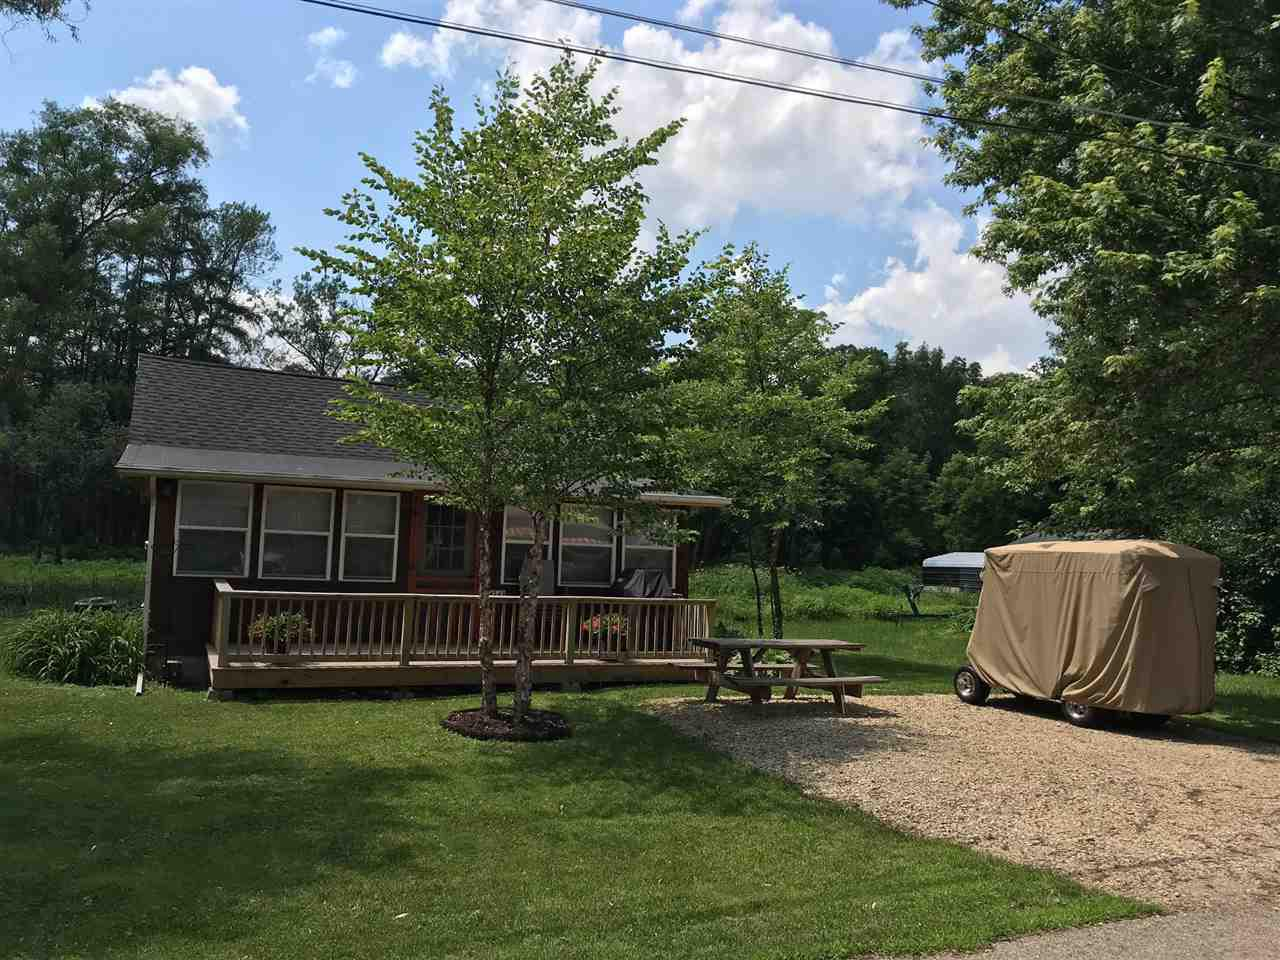 103 In Shade Along Lake Wingra >> Homes For Sale With Pole Barn In Cambridge Wi Realty Solutions Group